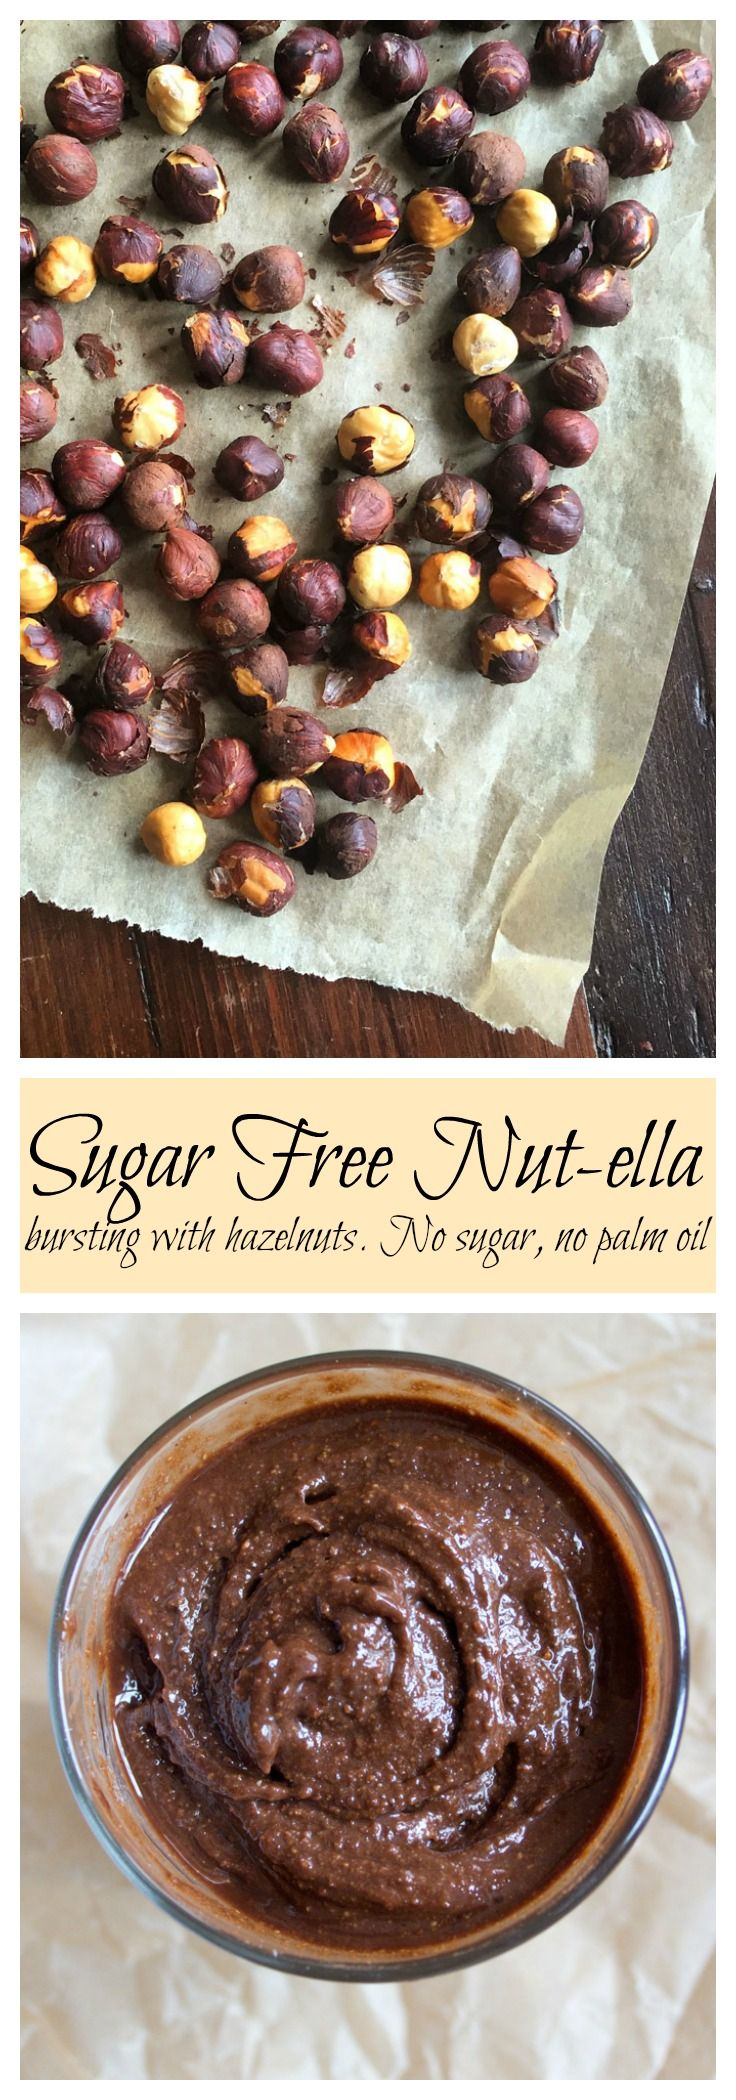 Nutty. Chocolatey. Irresistible. It is super easy to make your own sugar free nut-ella! And it tastes miles better. You'll never look back. Promise.